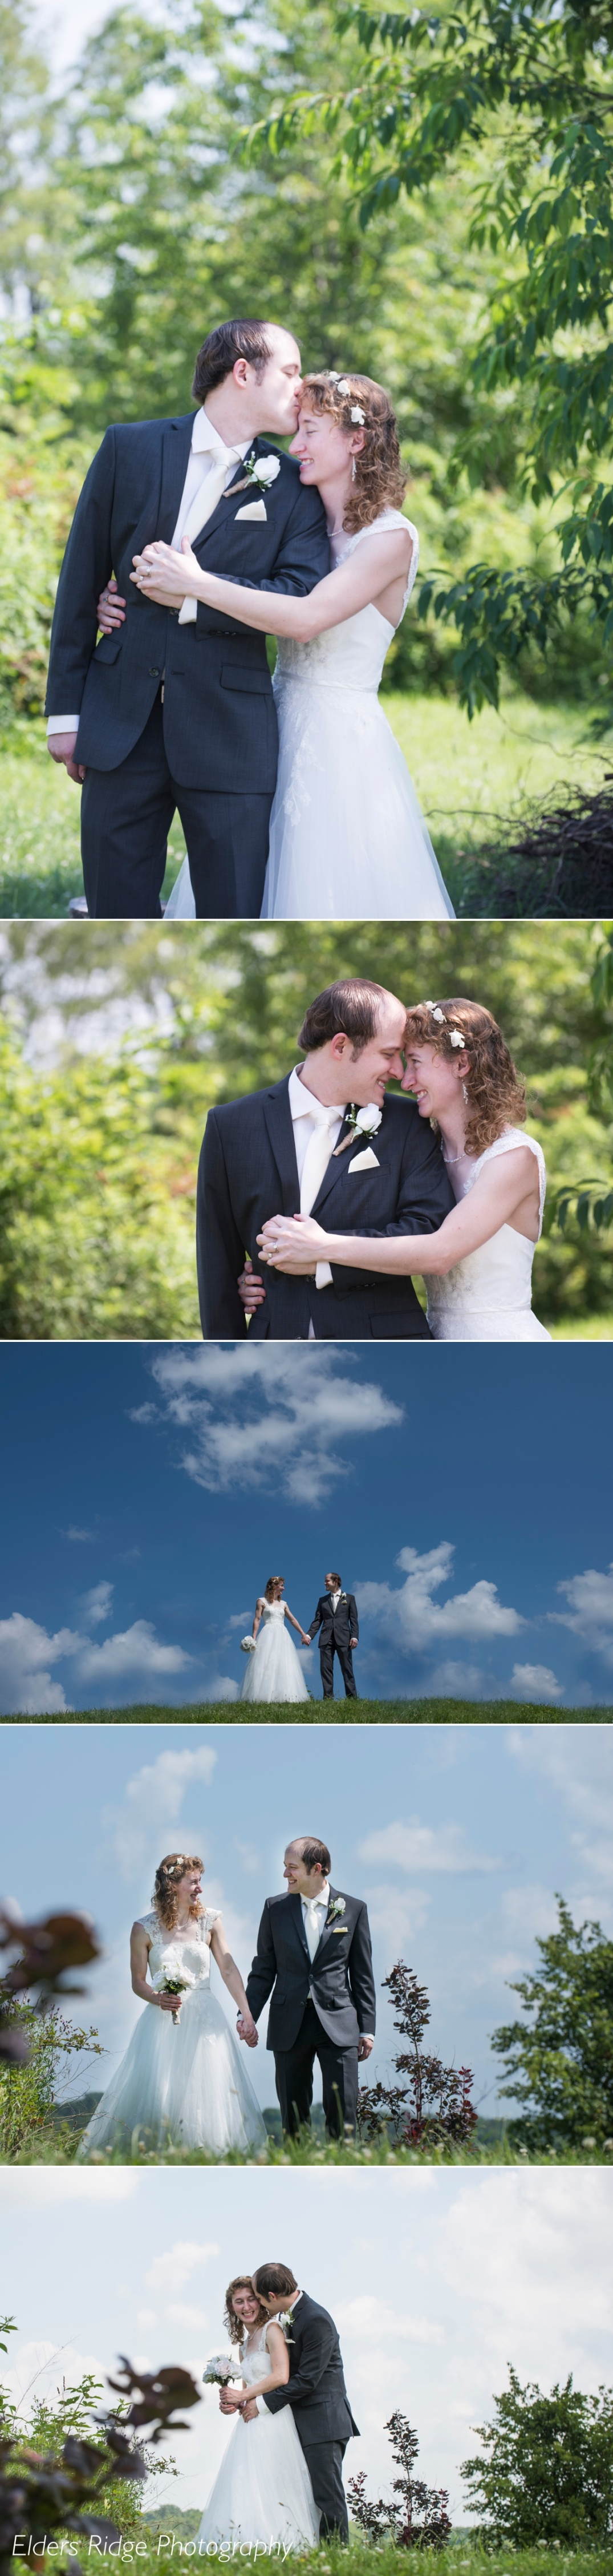 Wedding portraits with bright sun and blue sky